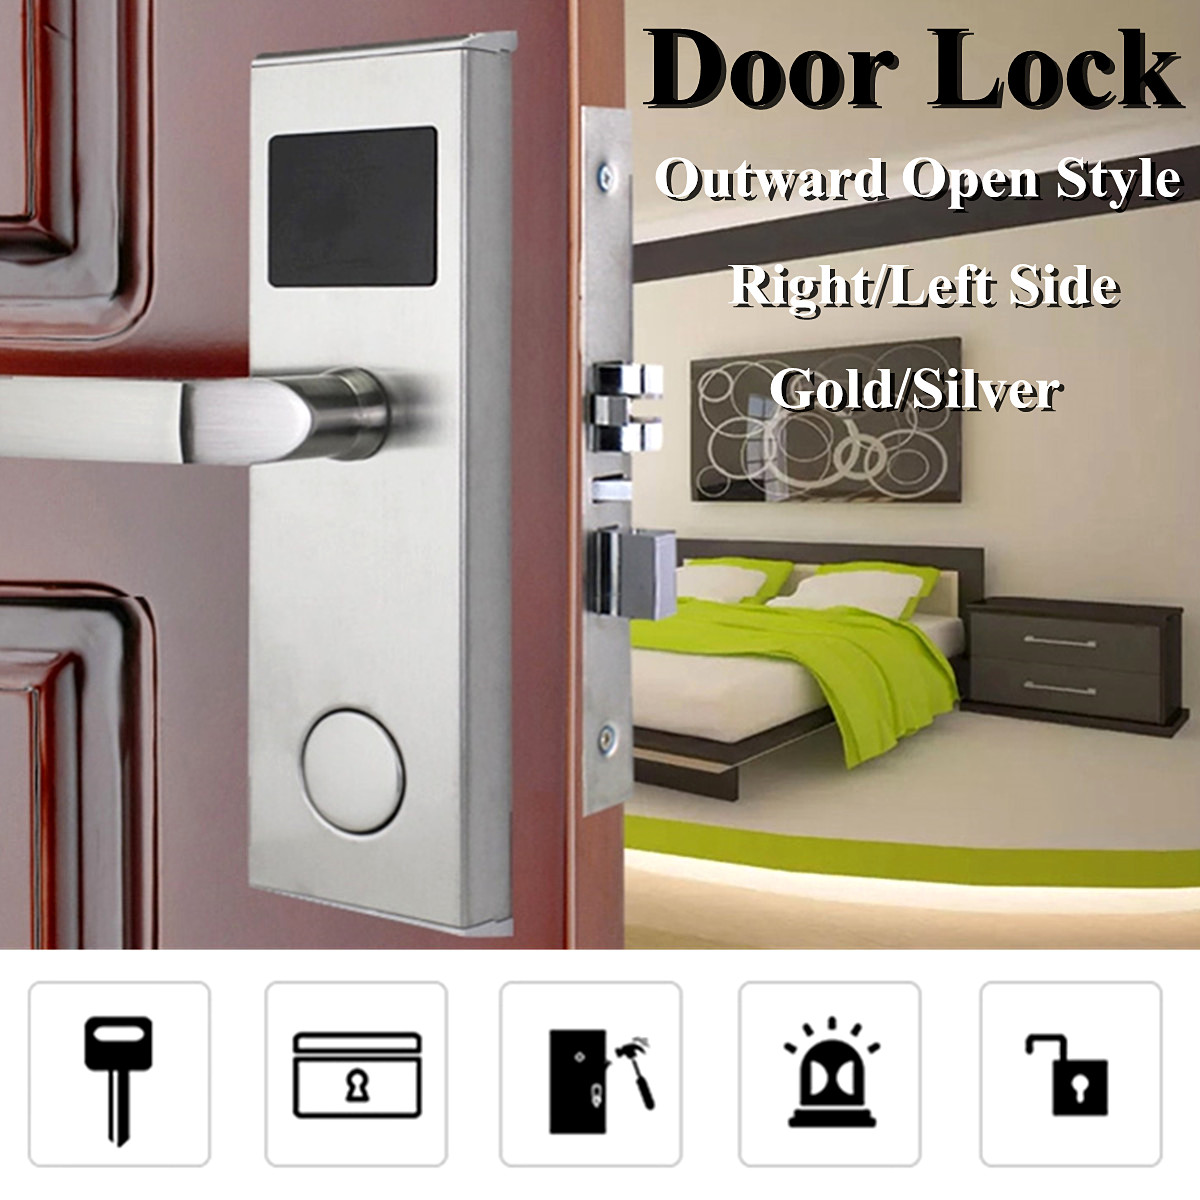 Security & Protection Silver Switch Prousb System Program By Hotel Lock Software Room Number And Time Limit Function 125khz Rfid Card Switch Available In Various Designs And Specifications For Your Selection Access Control Accessories